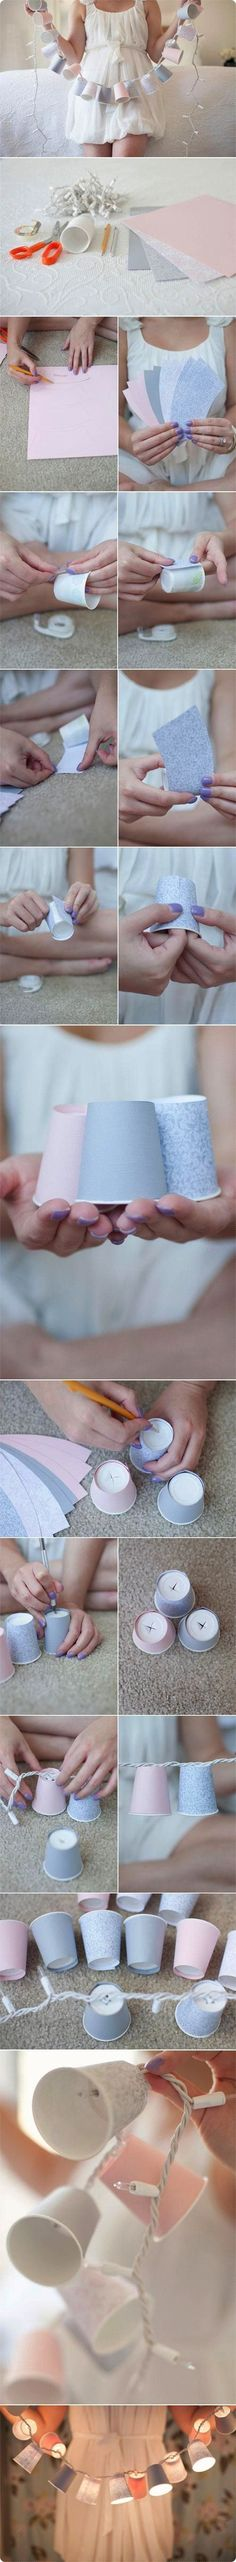 Great idea... Use Dixie cups as cool twinkle light lantern chain!